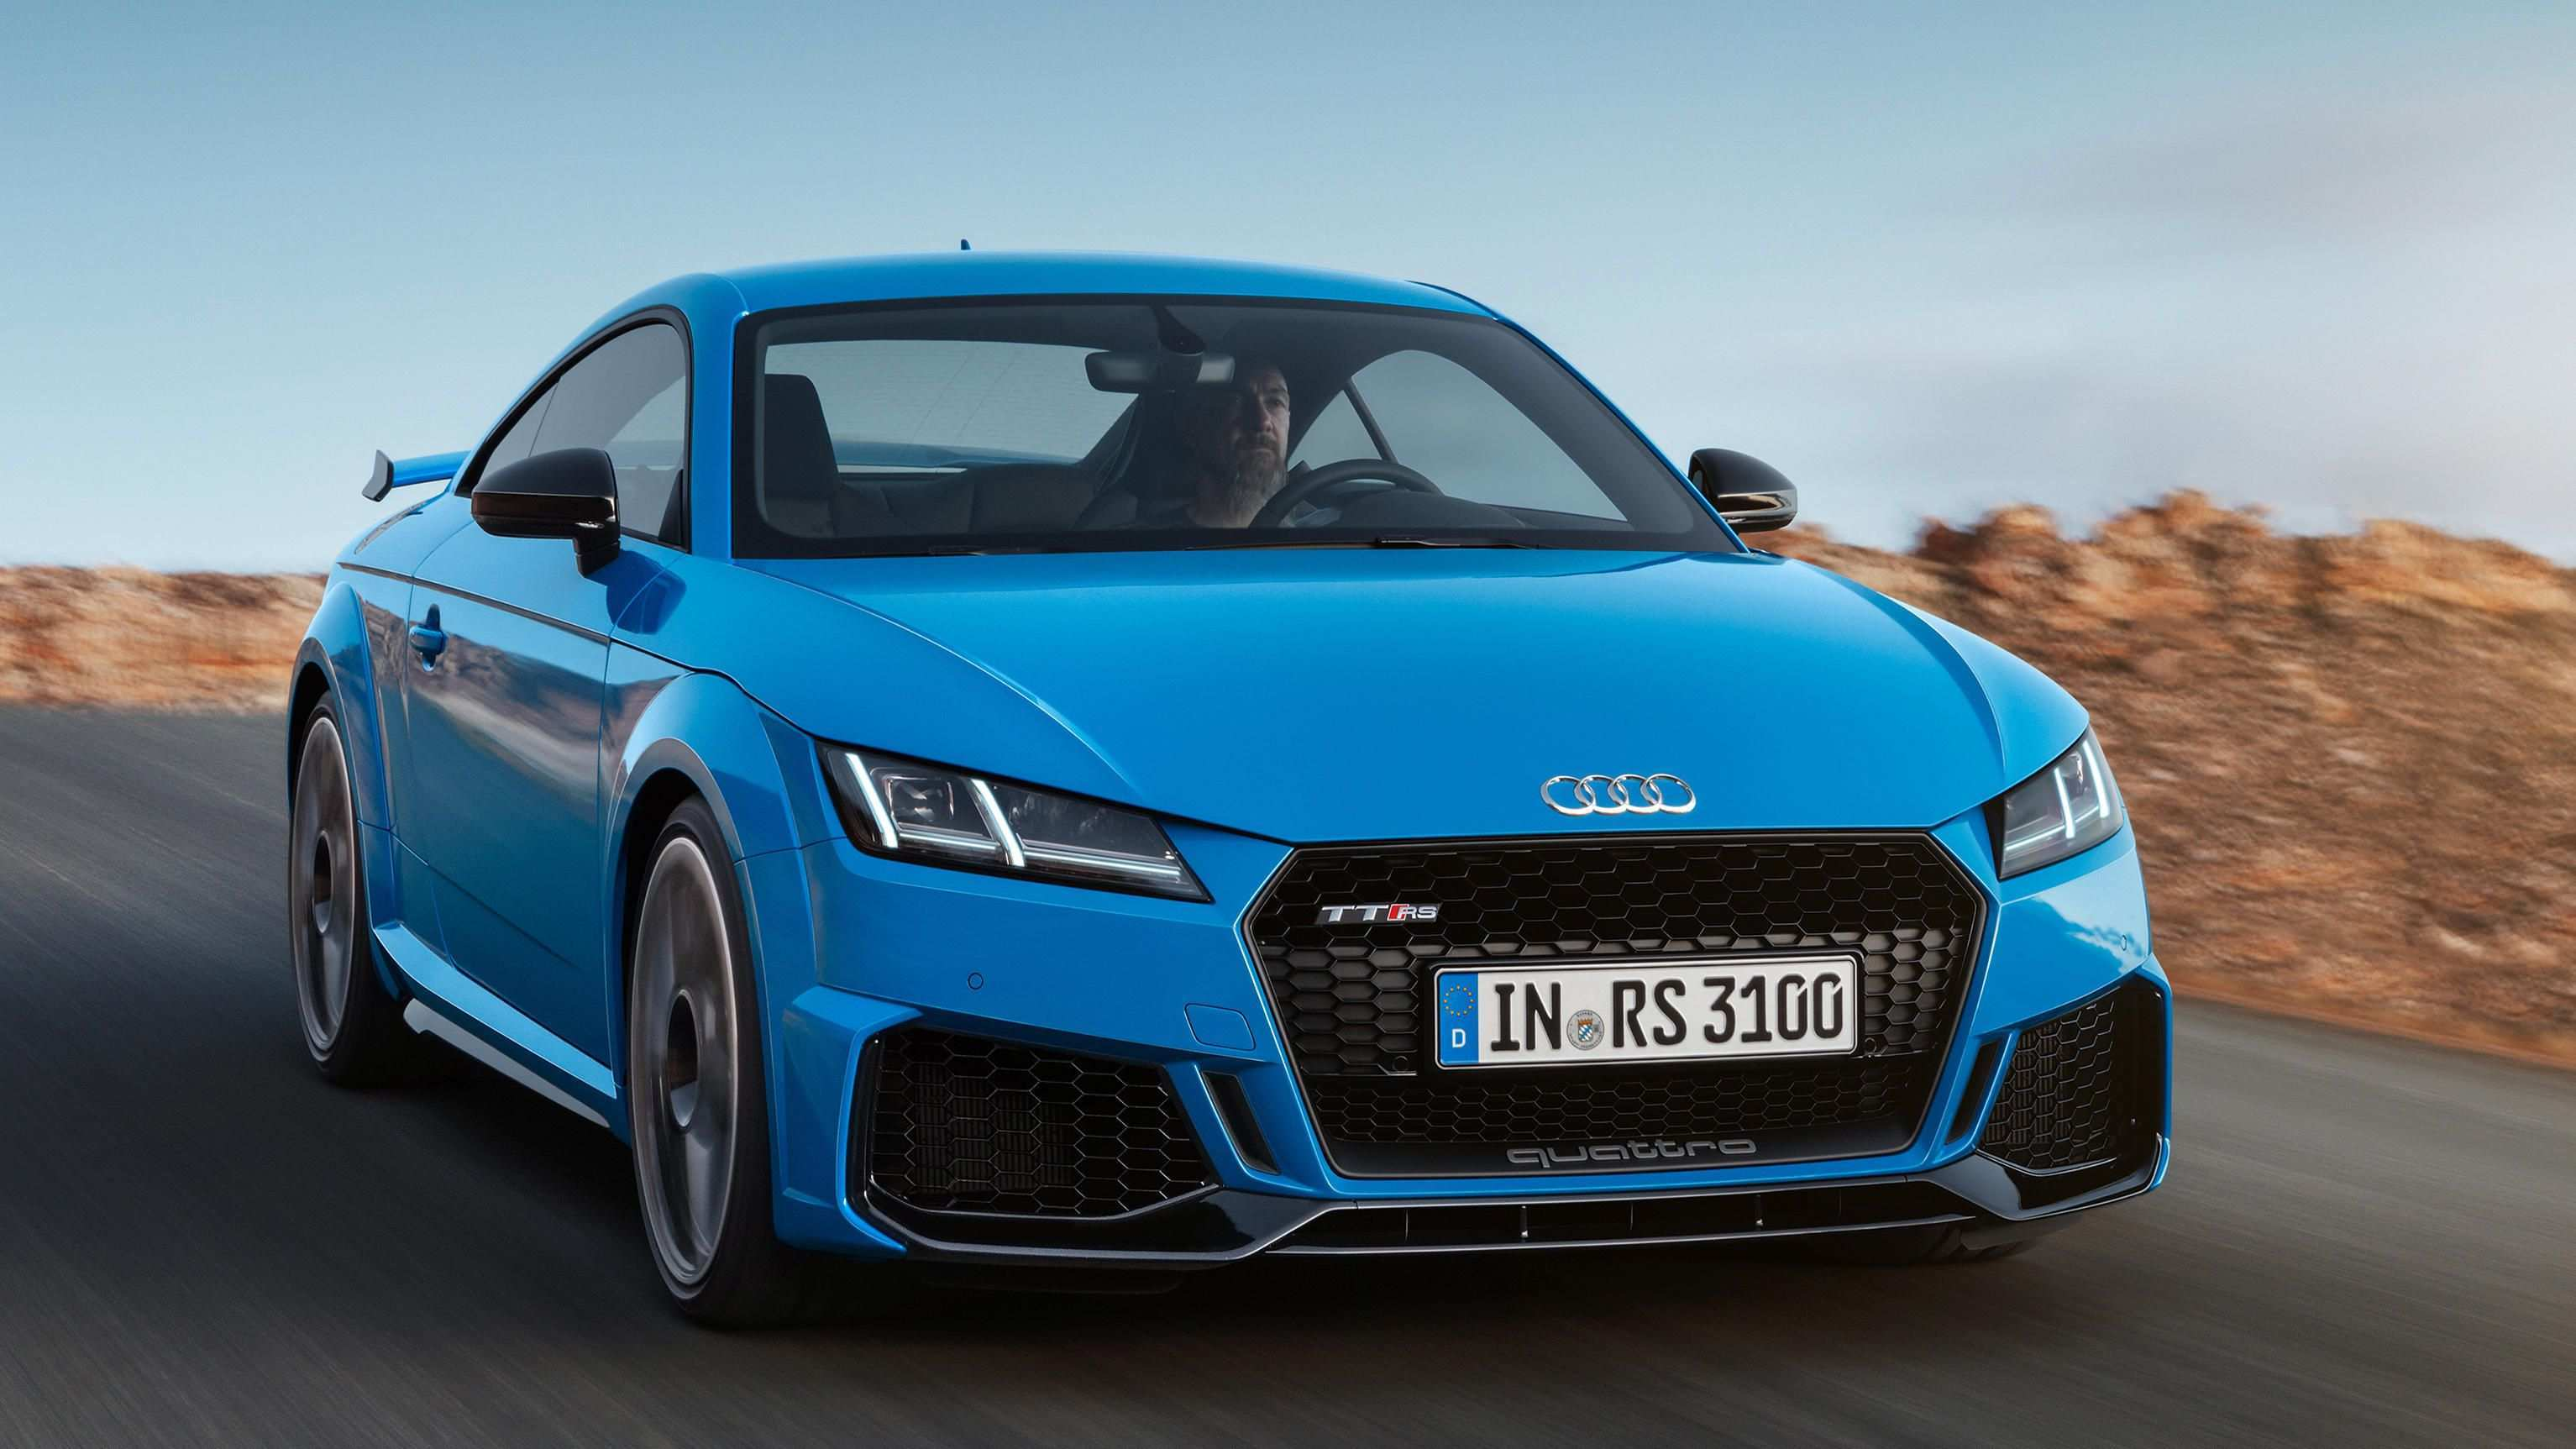 21 A 2020 Audi Tt Rs Spy Shoot